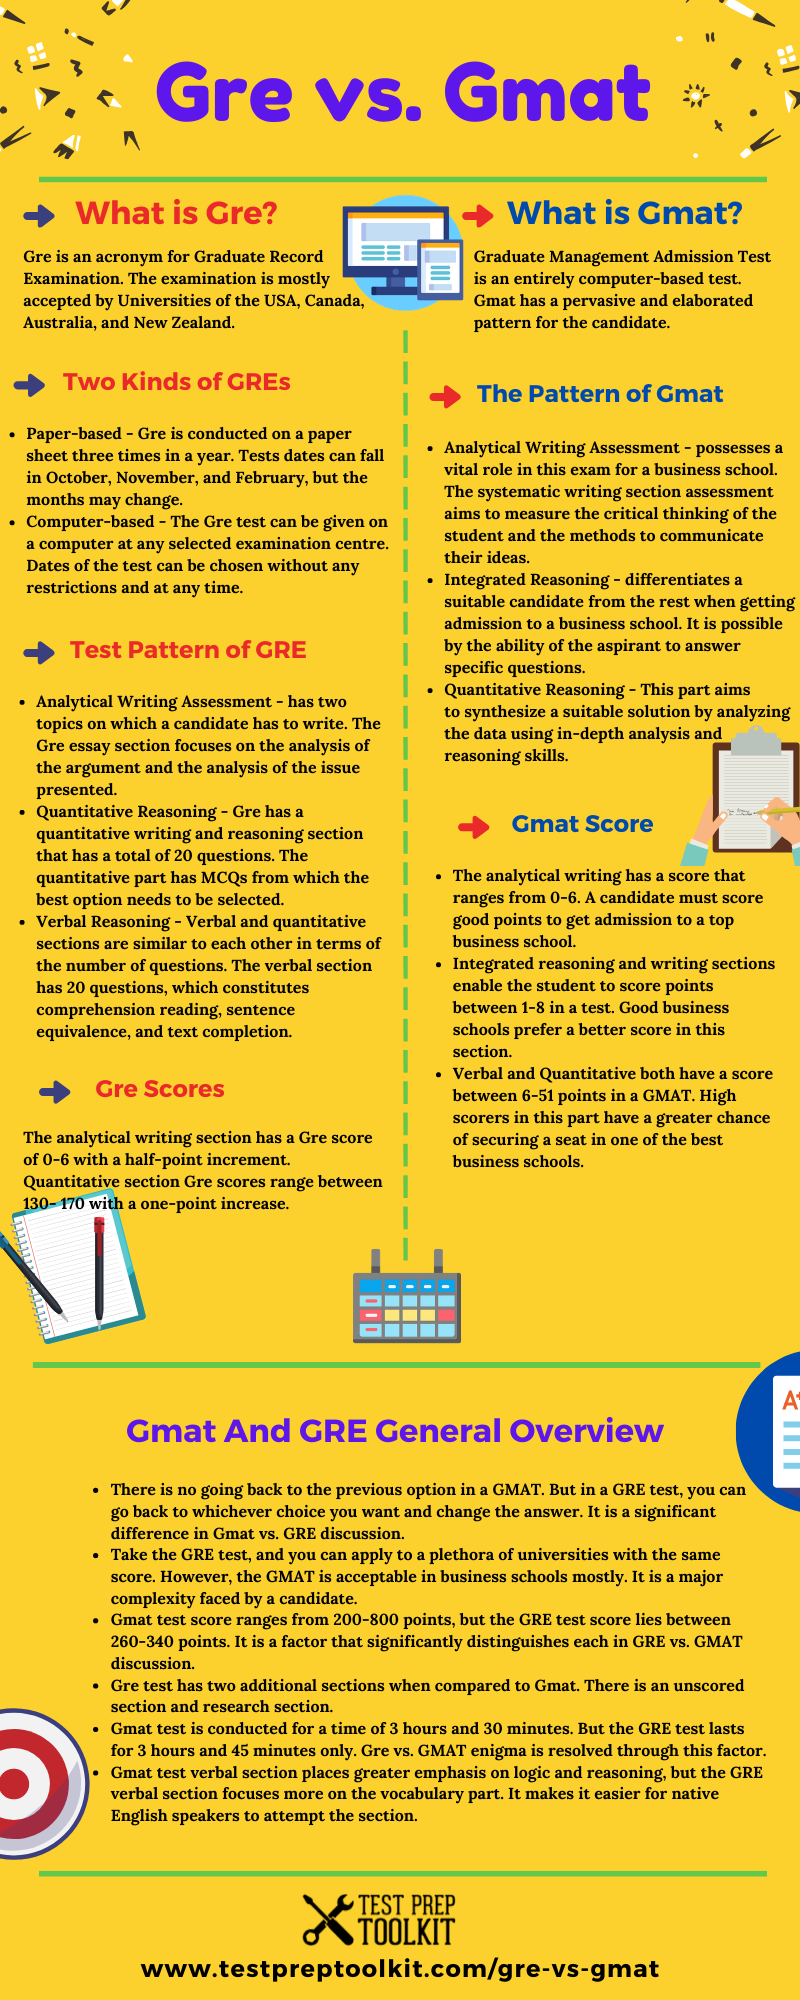 Tests Are A Perfect Way To Evaluate Oneself And Push The Limits Of Knowledge Gre And Gmat Are Crucial Tests That A Student Can Take